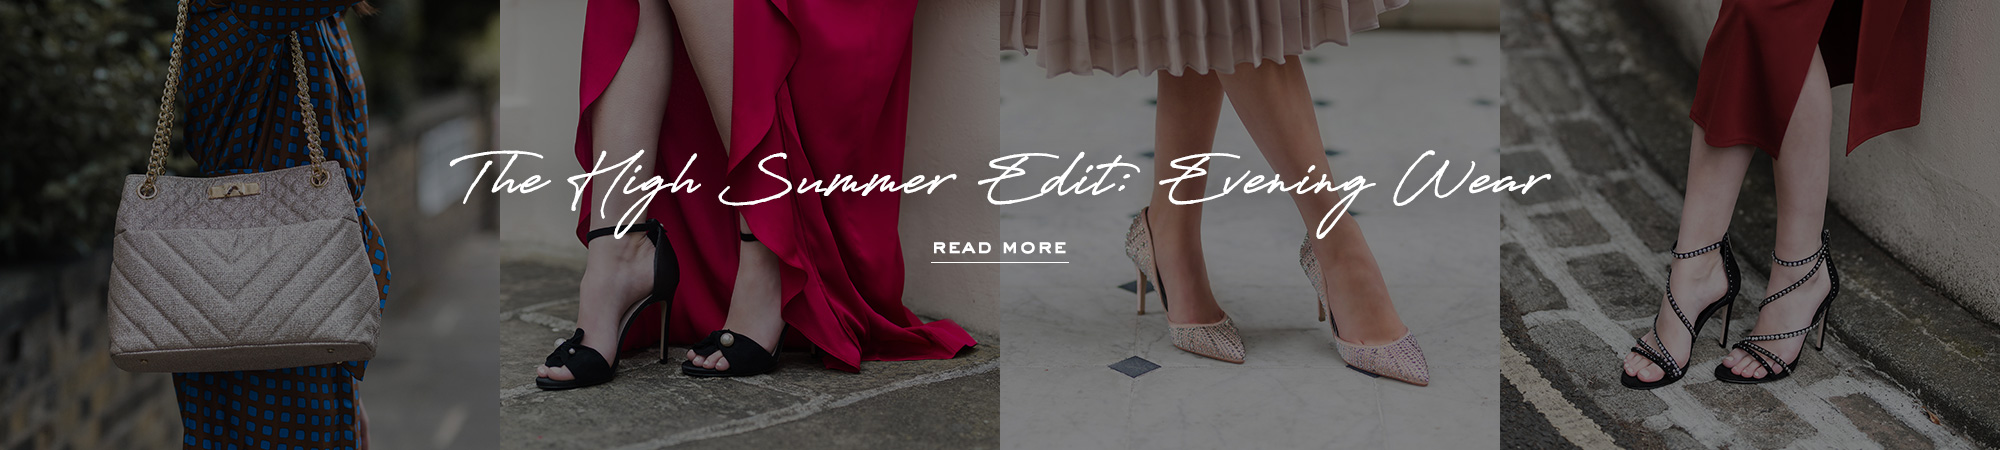 The High Summer Edit: Evening Wear